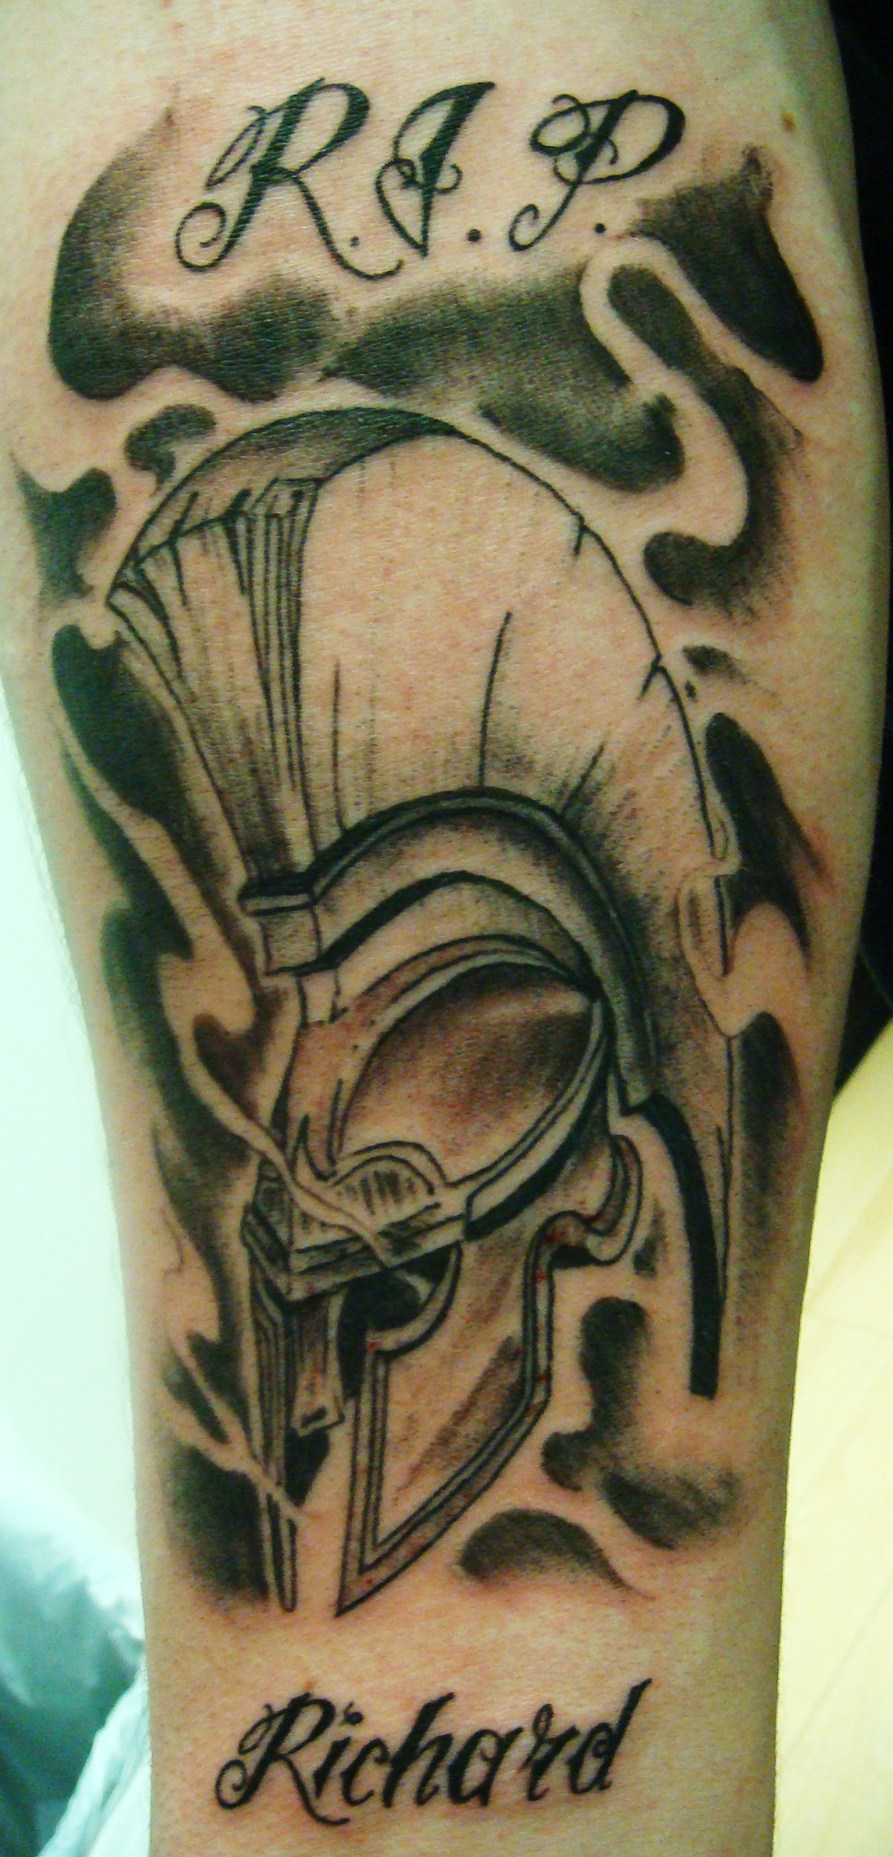 R.I.P - Helmet Tattoo (2)